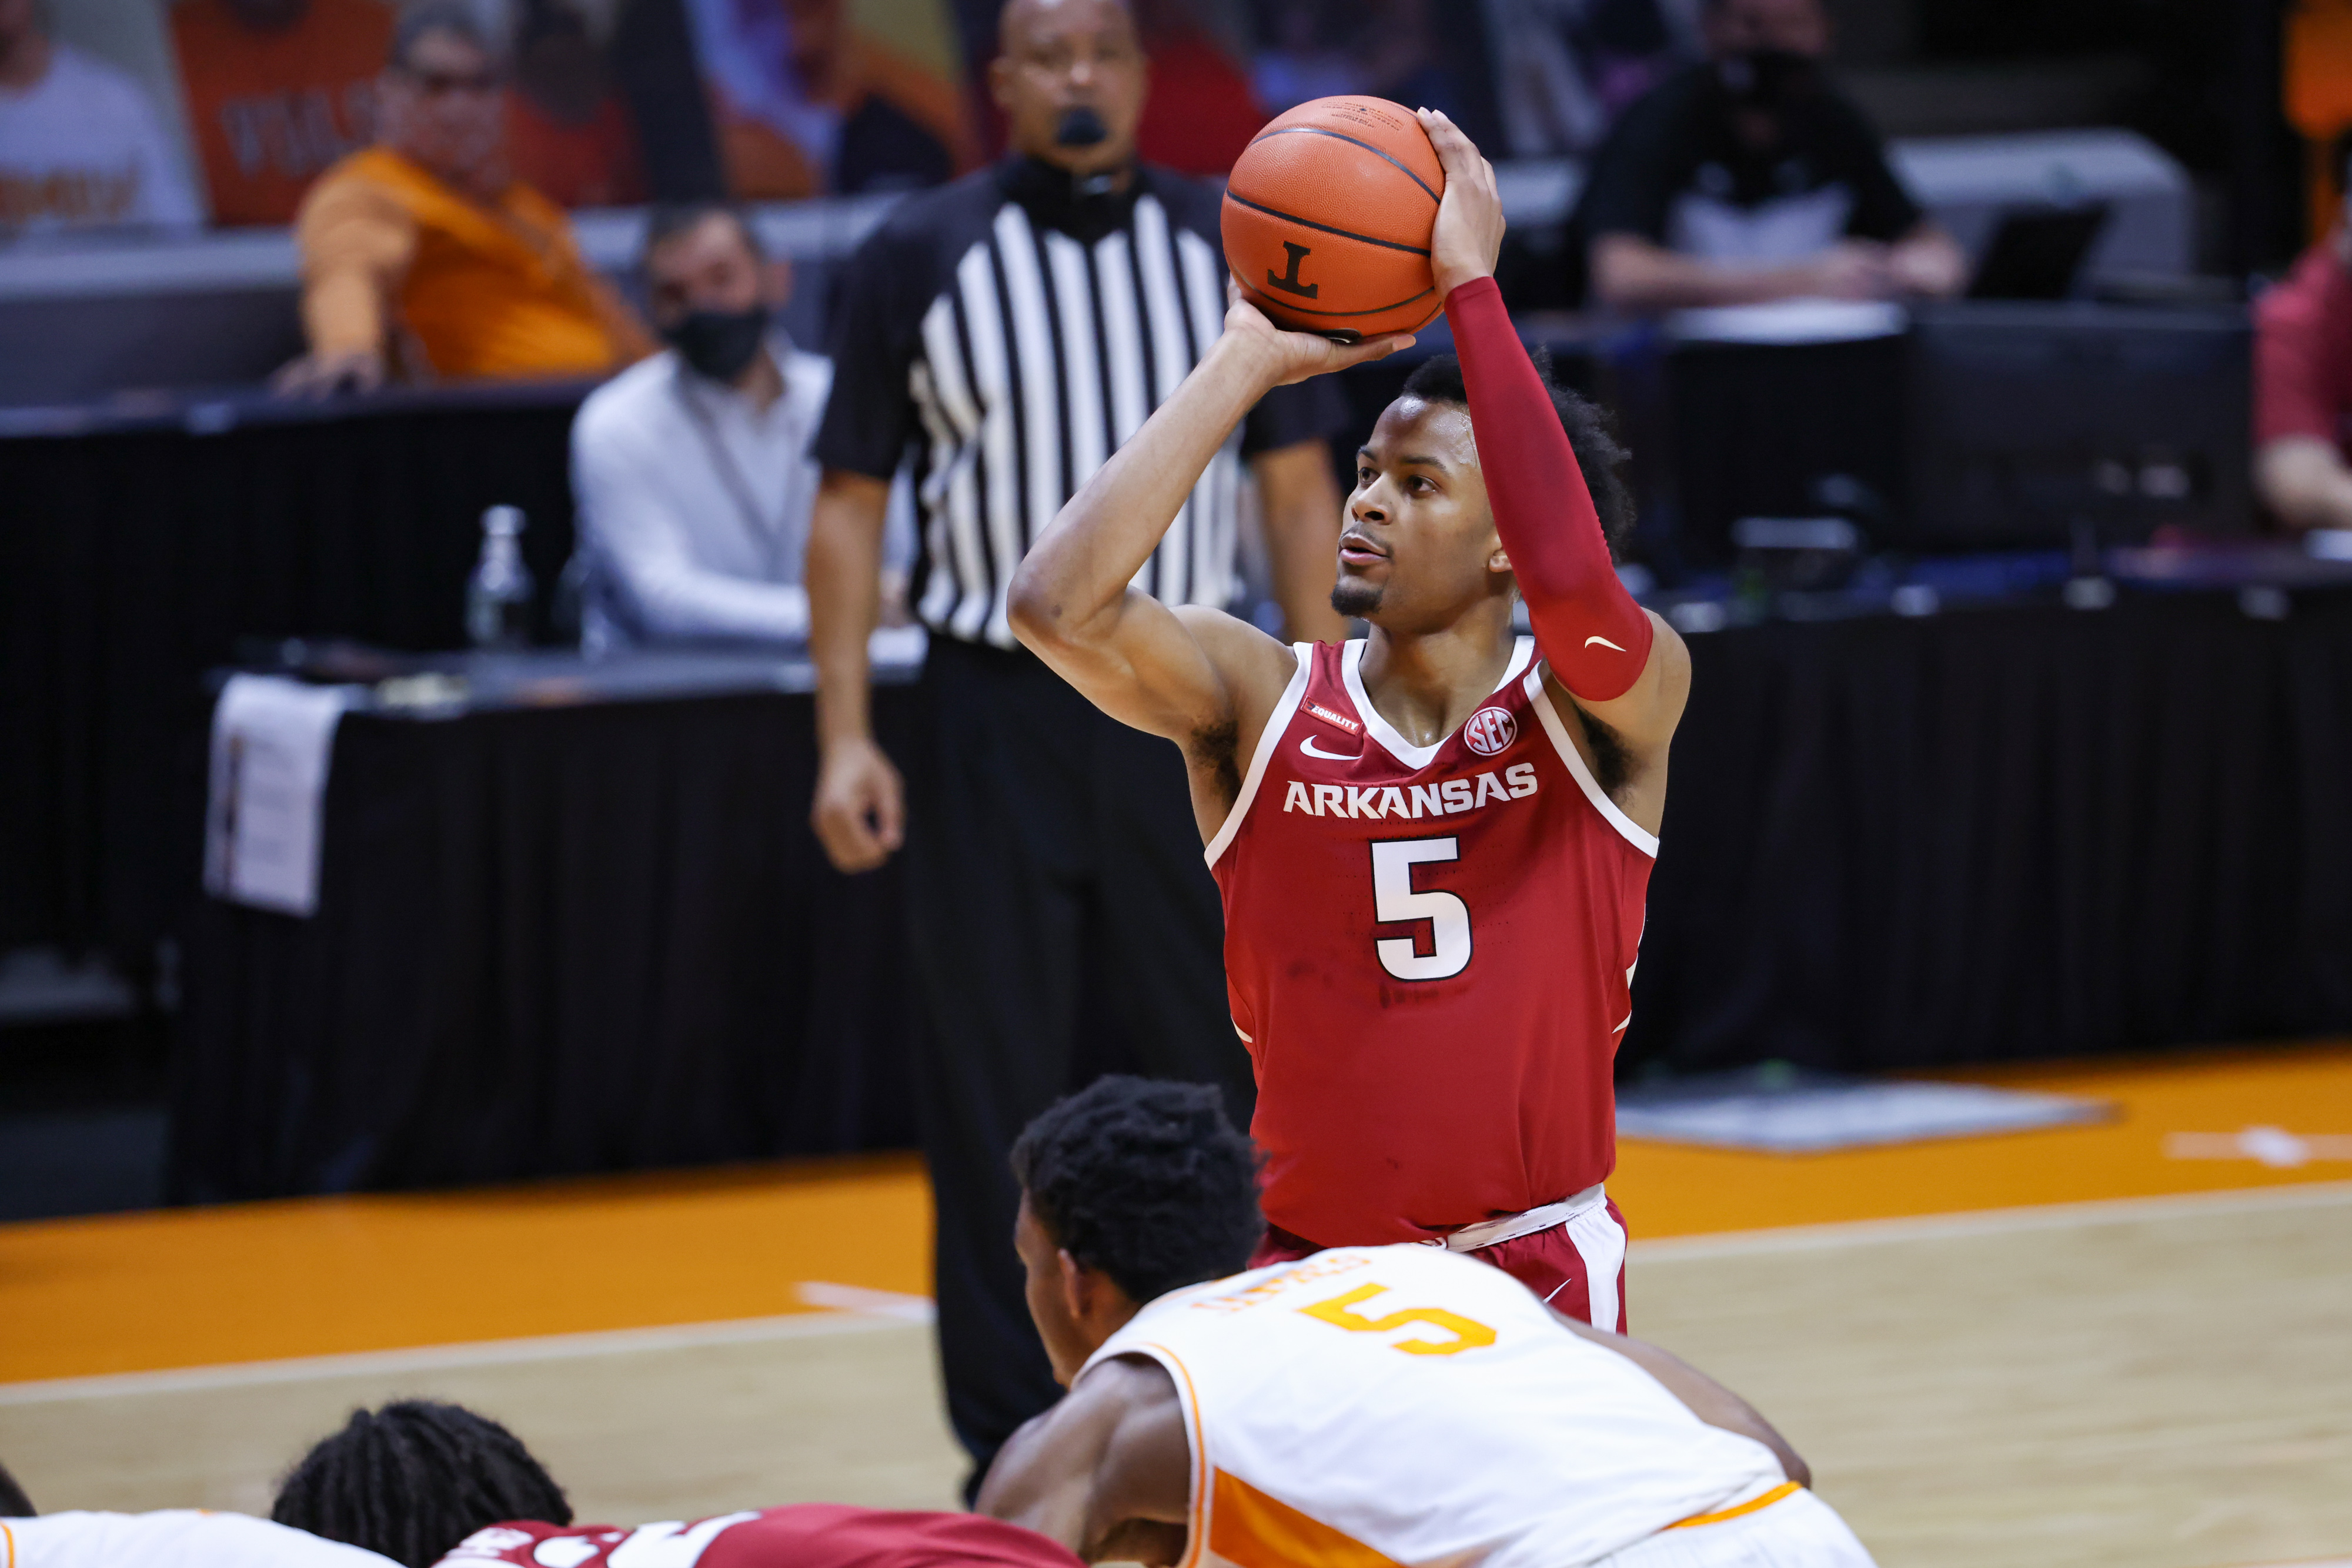 Jan 6, 2021; Knoxville, Tennessee, USA; Arkansas Razorbacks guard Moses Moody (5) shoots a free throw against the Tennessee Volunteers during the first half at Thompson-Boling Arena.